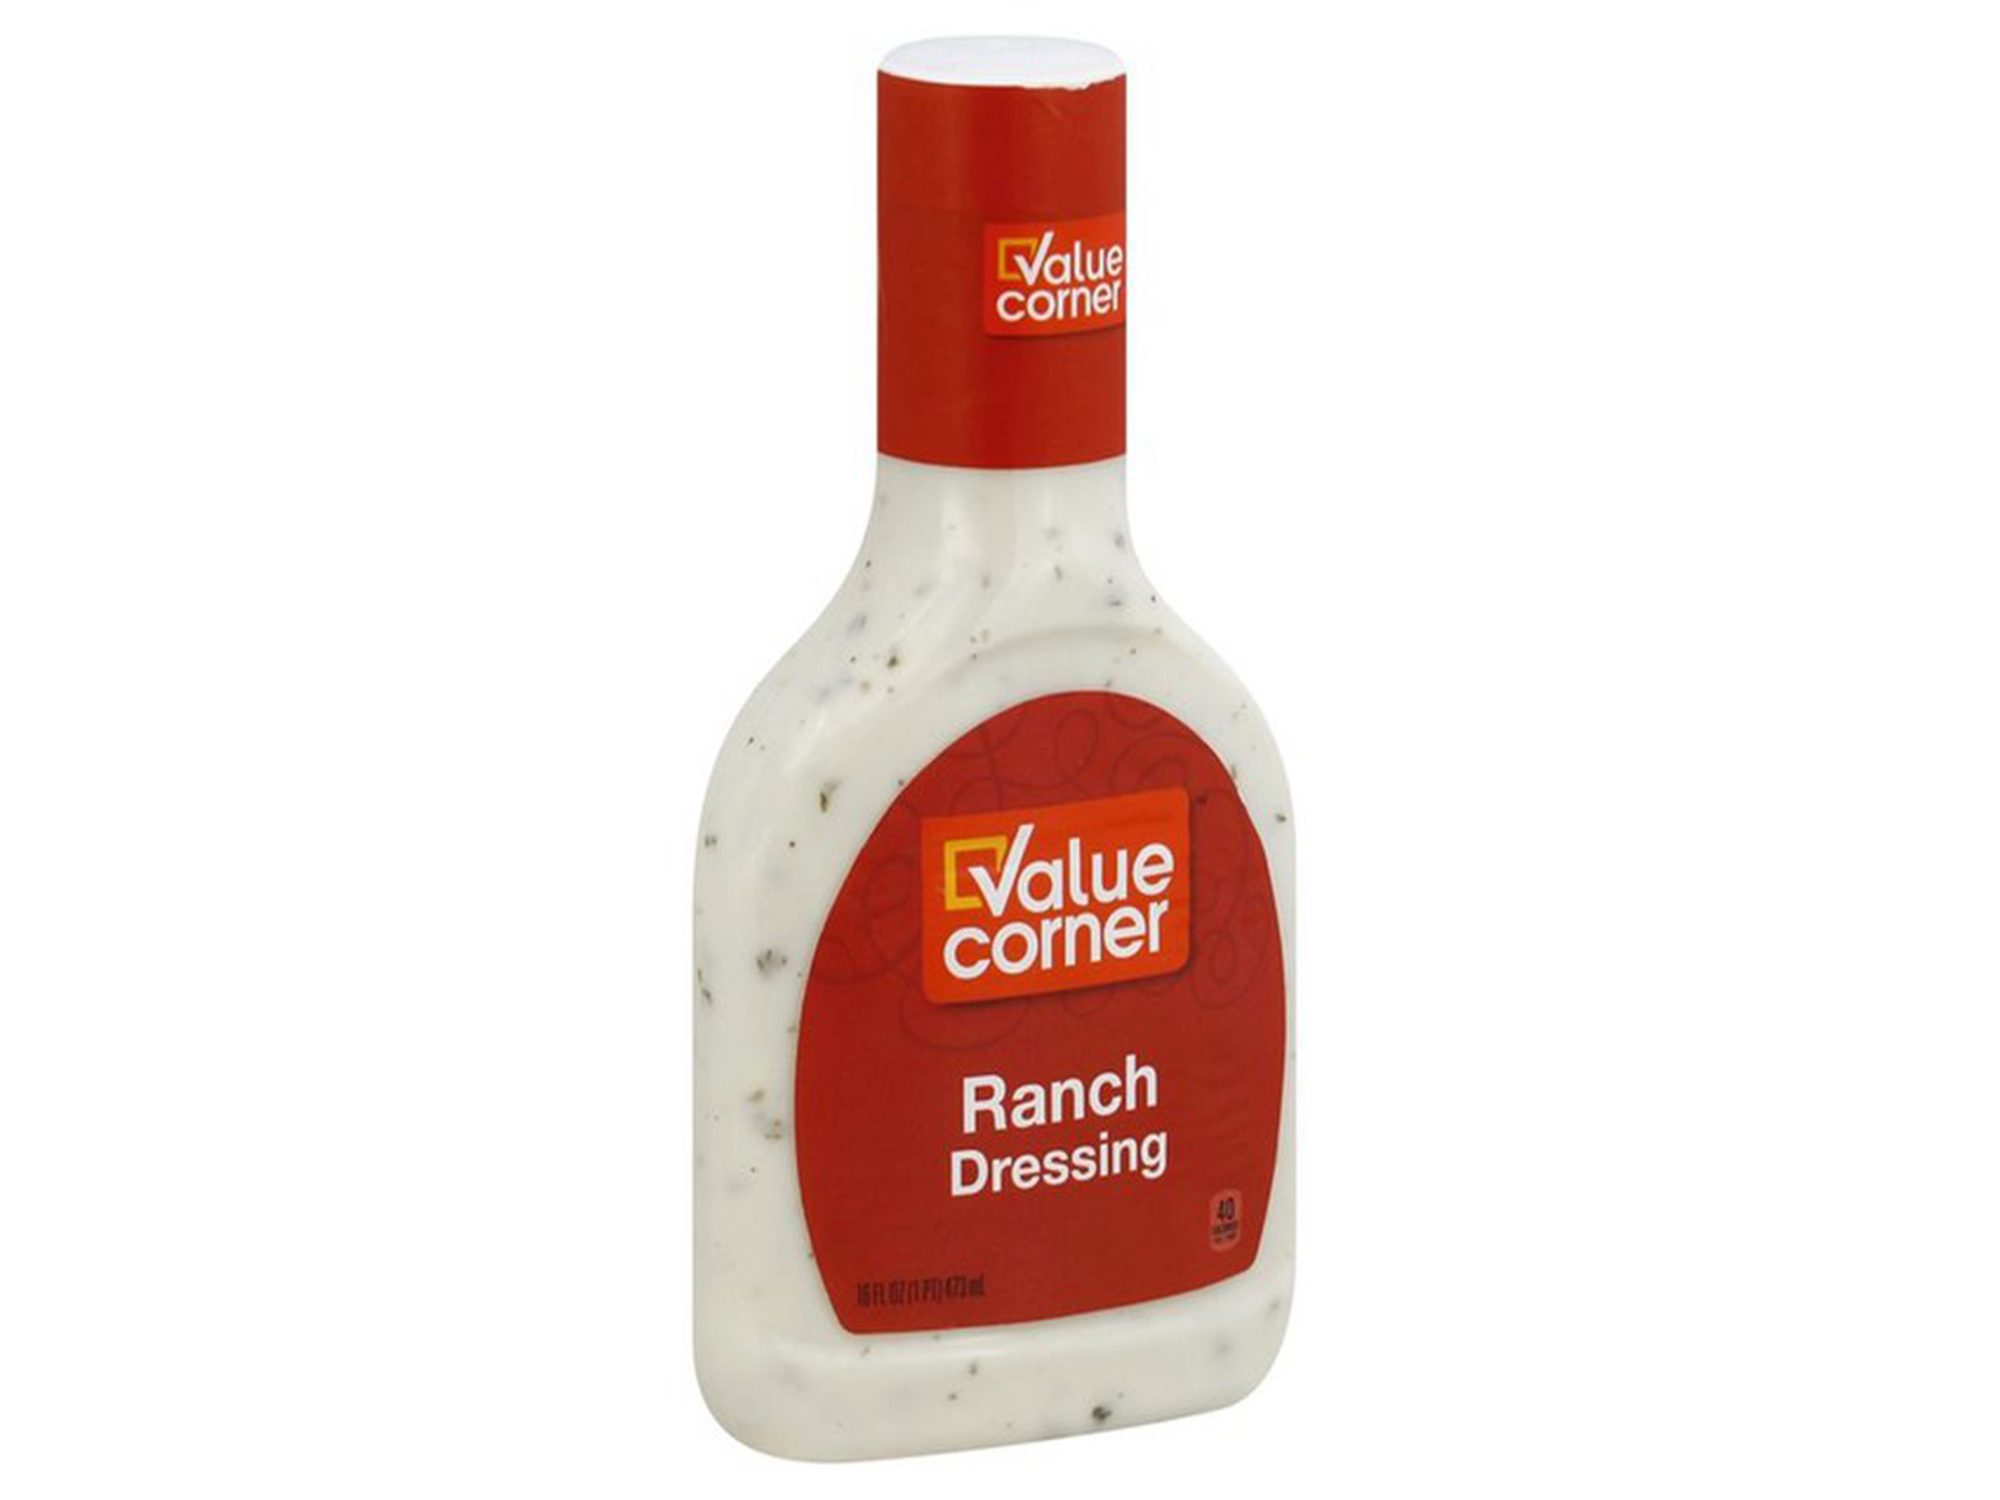 value-corner-ranch copy.jpg